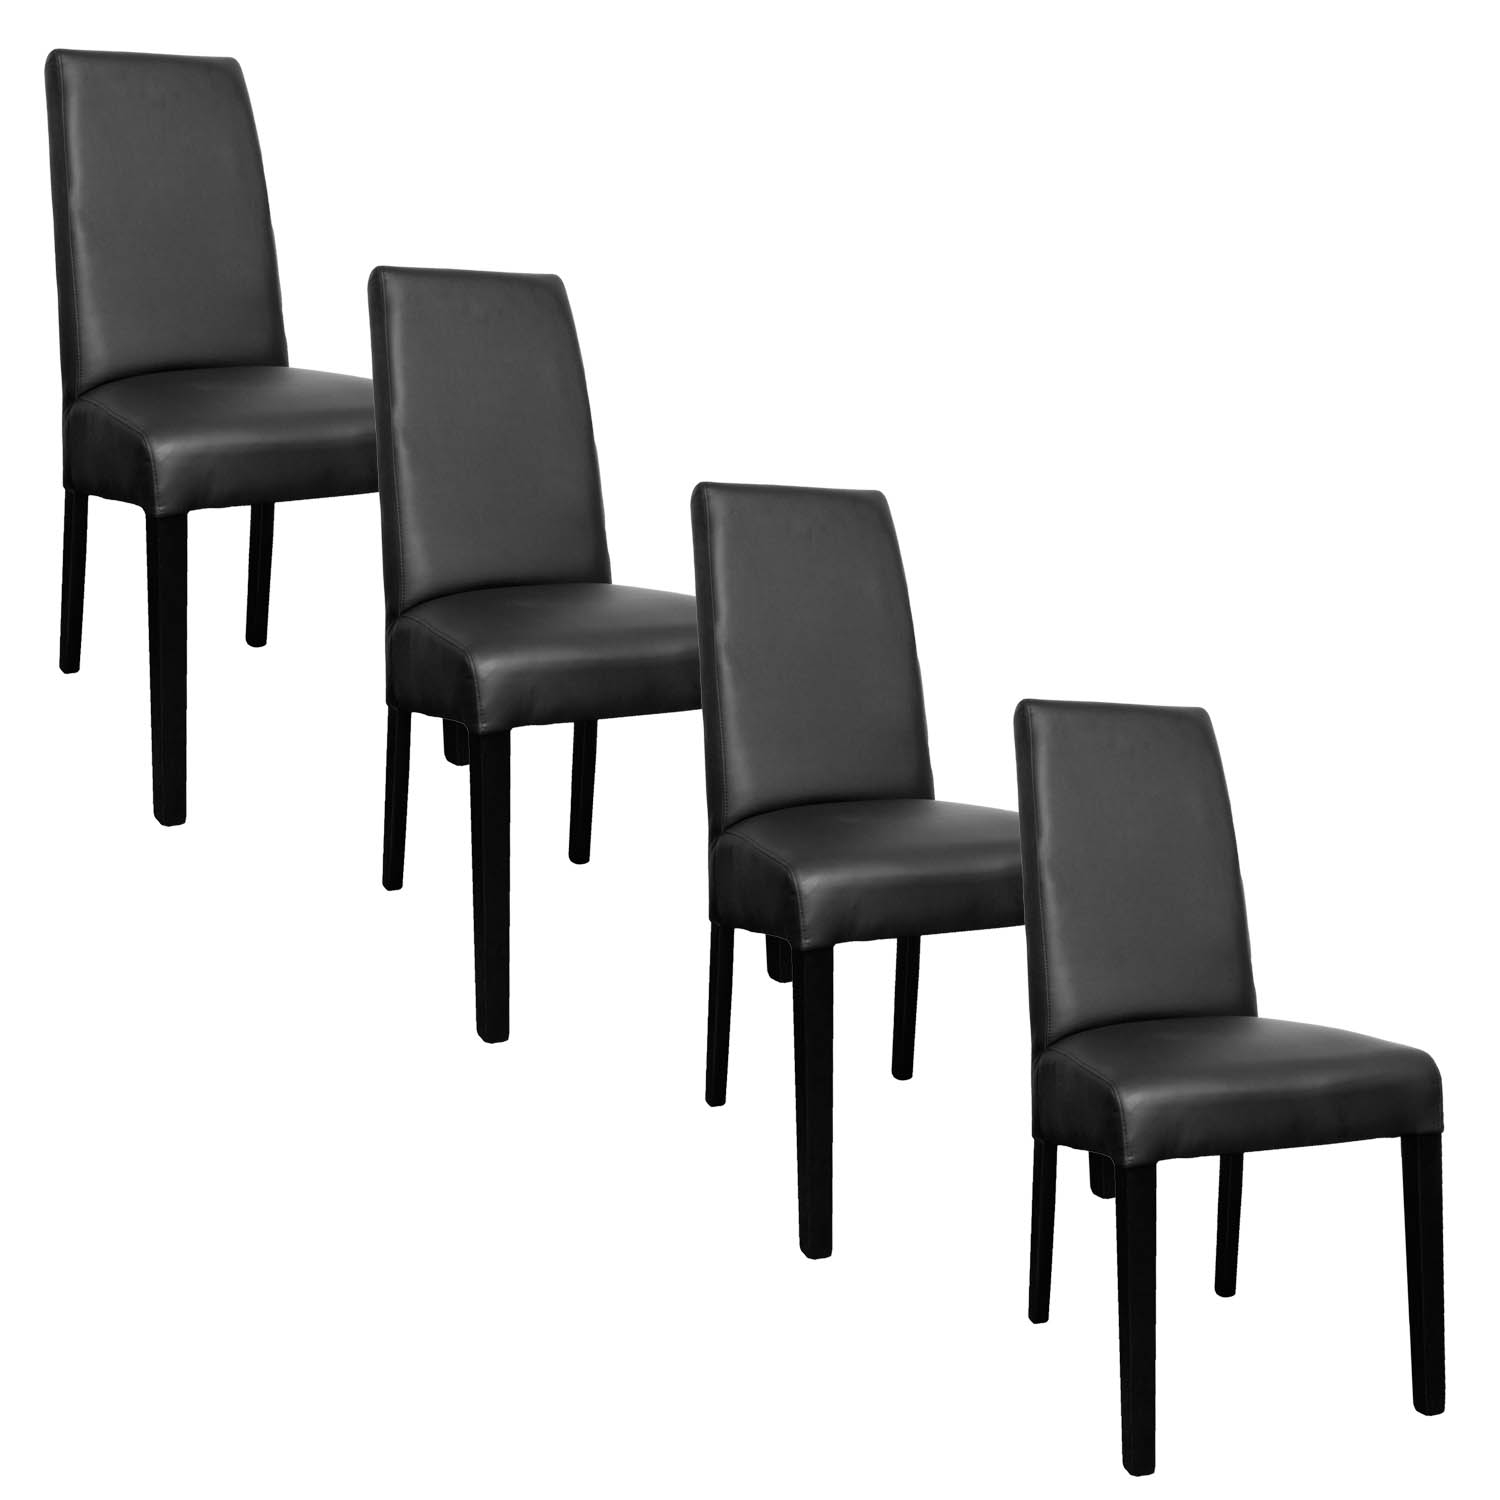 deco in paris lot de 4 chaises noir muka muka noir x4. Black Bedroom Furniture Sets. Home Design Ideas